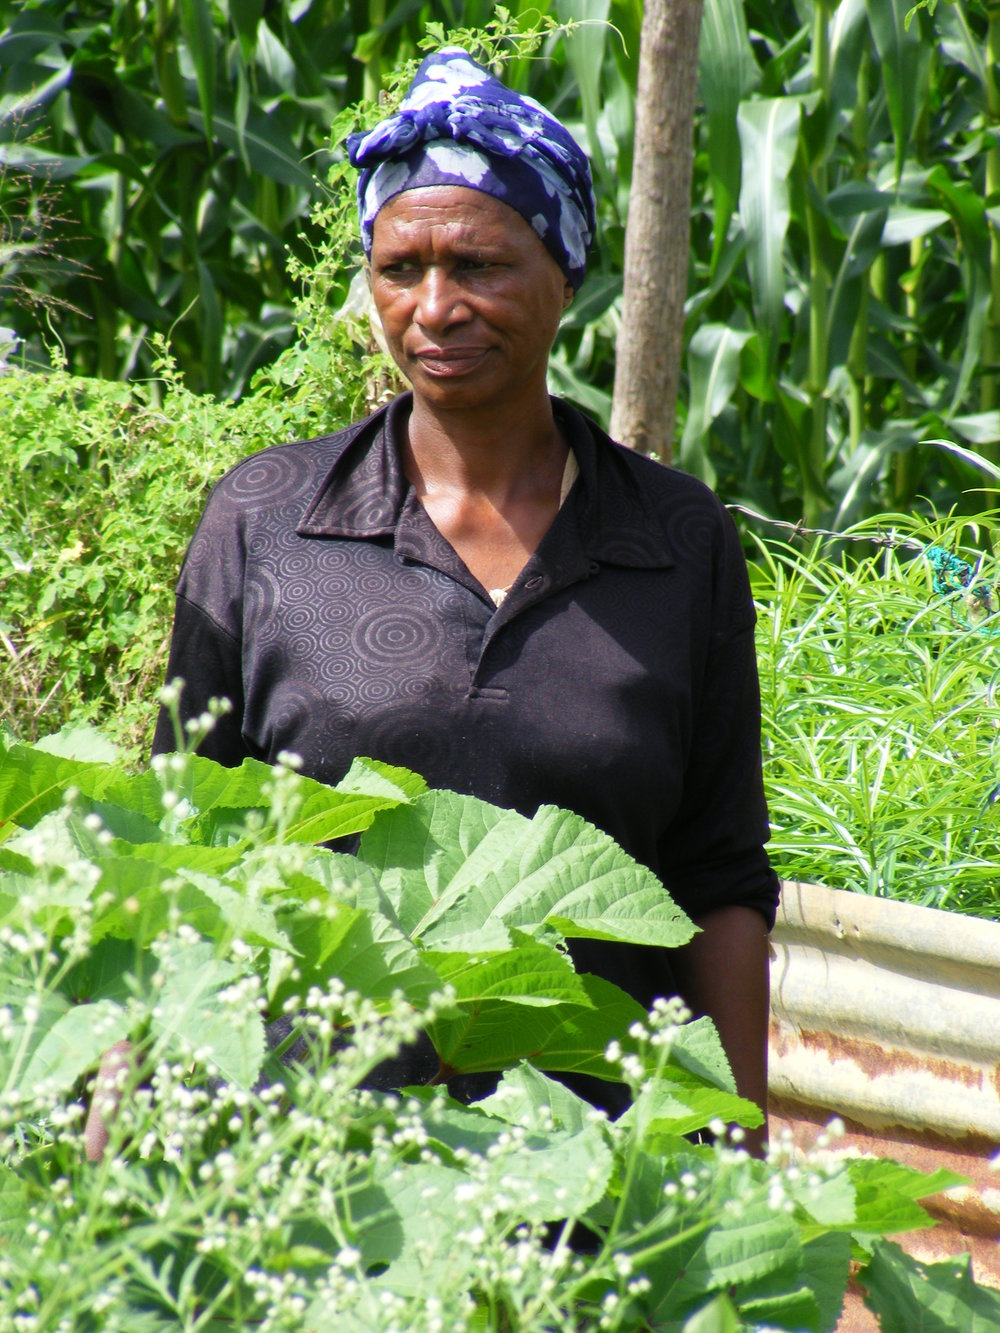 Thoko Ngwnena:'I used to be a loner, and no-one would come to visit my home. Now they visit me, and I visit them, because I have information and skills to share. Life is better. I now have a good relationship with my relatives. I am respected in my family, and my ideas are now listened to.'